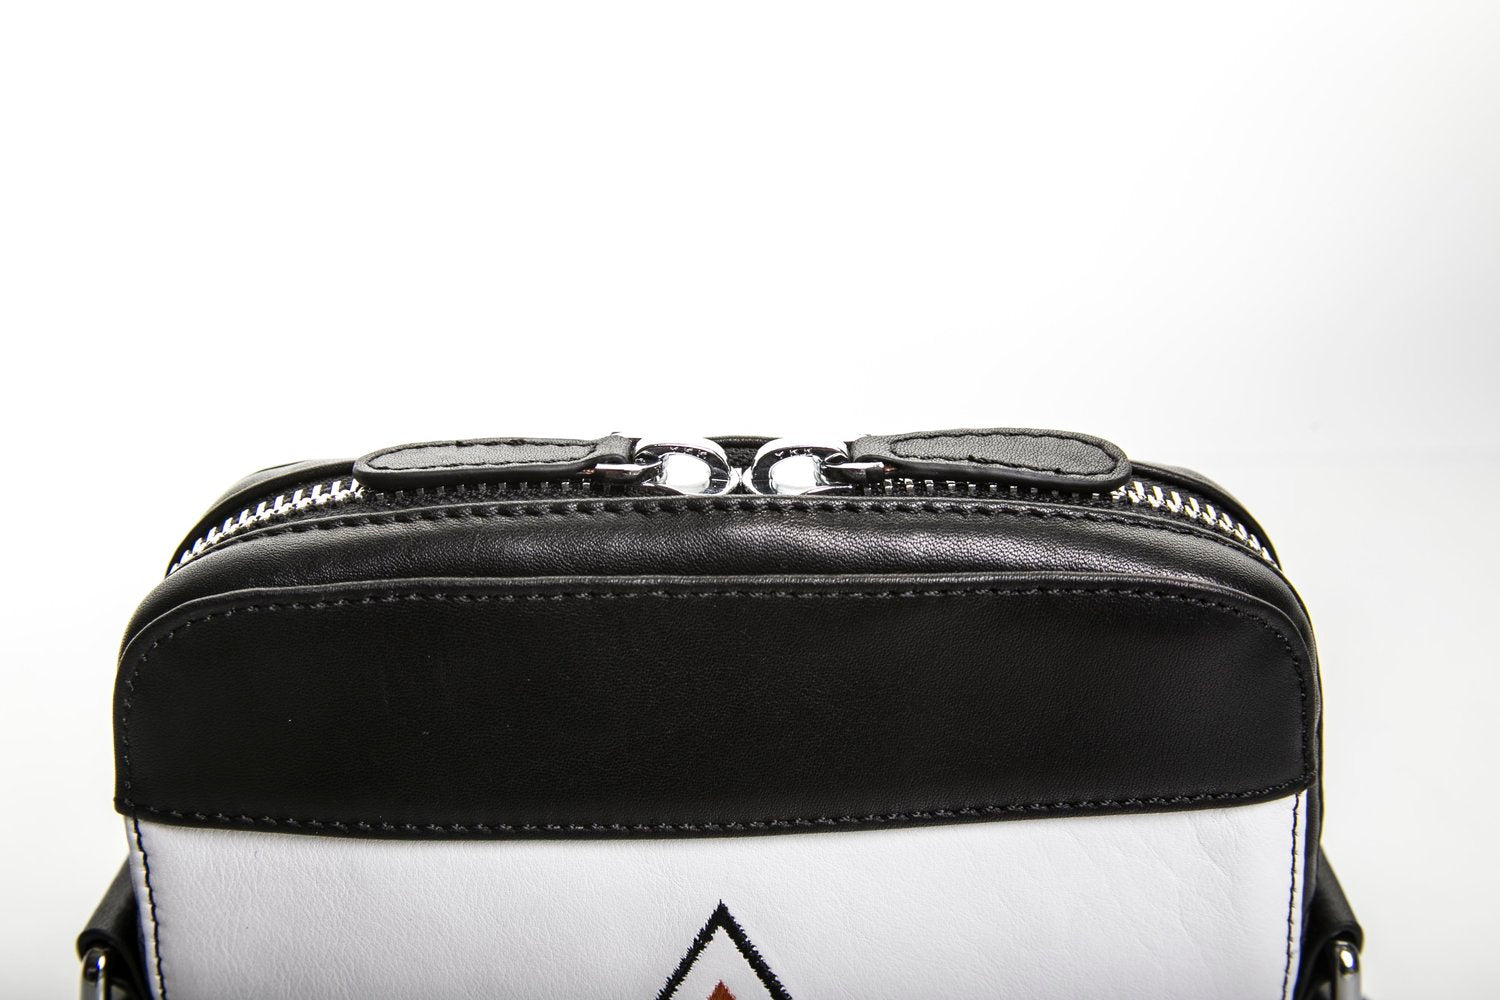 CB VIOR | Power Black Unisex Messenger Bag